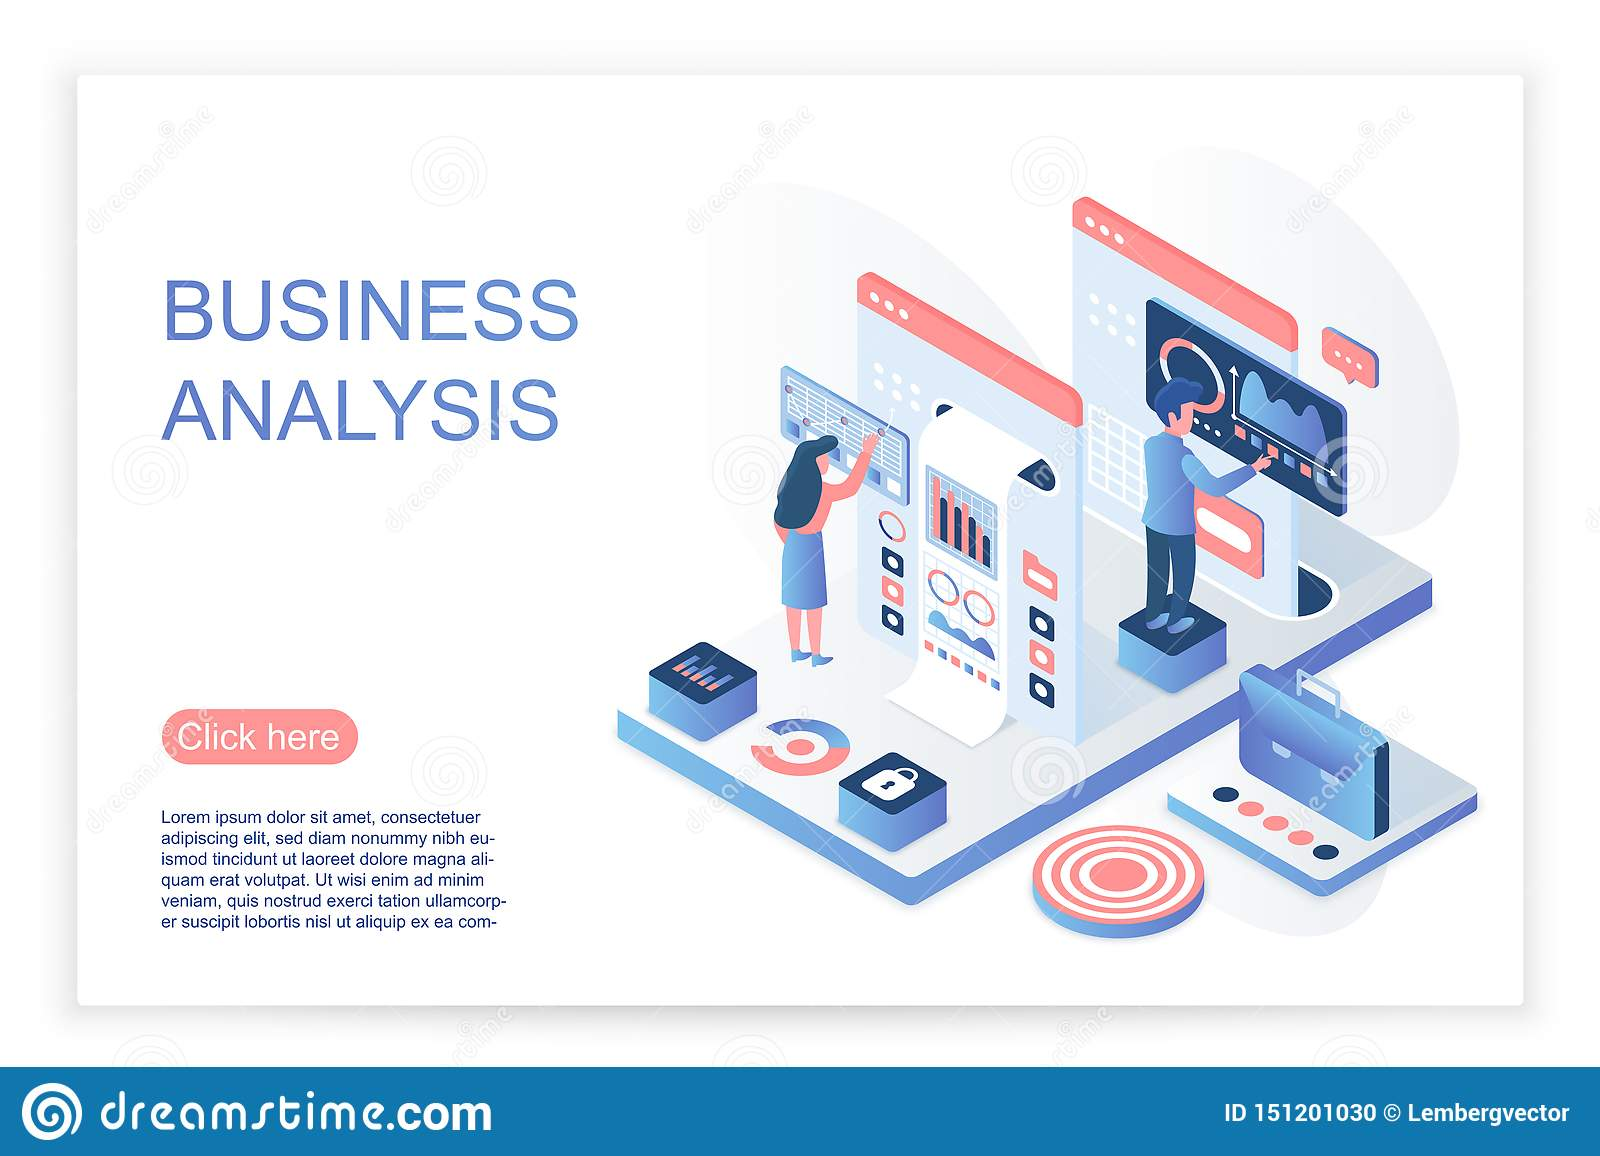 People interacting with virtual screen, analyzing business data and charts. Business data analysis website page